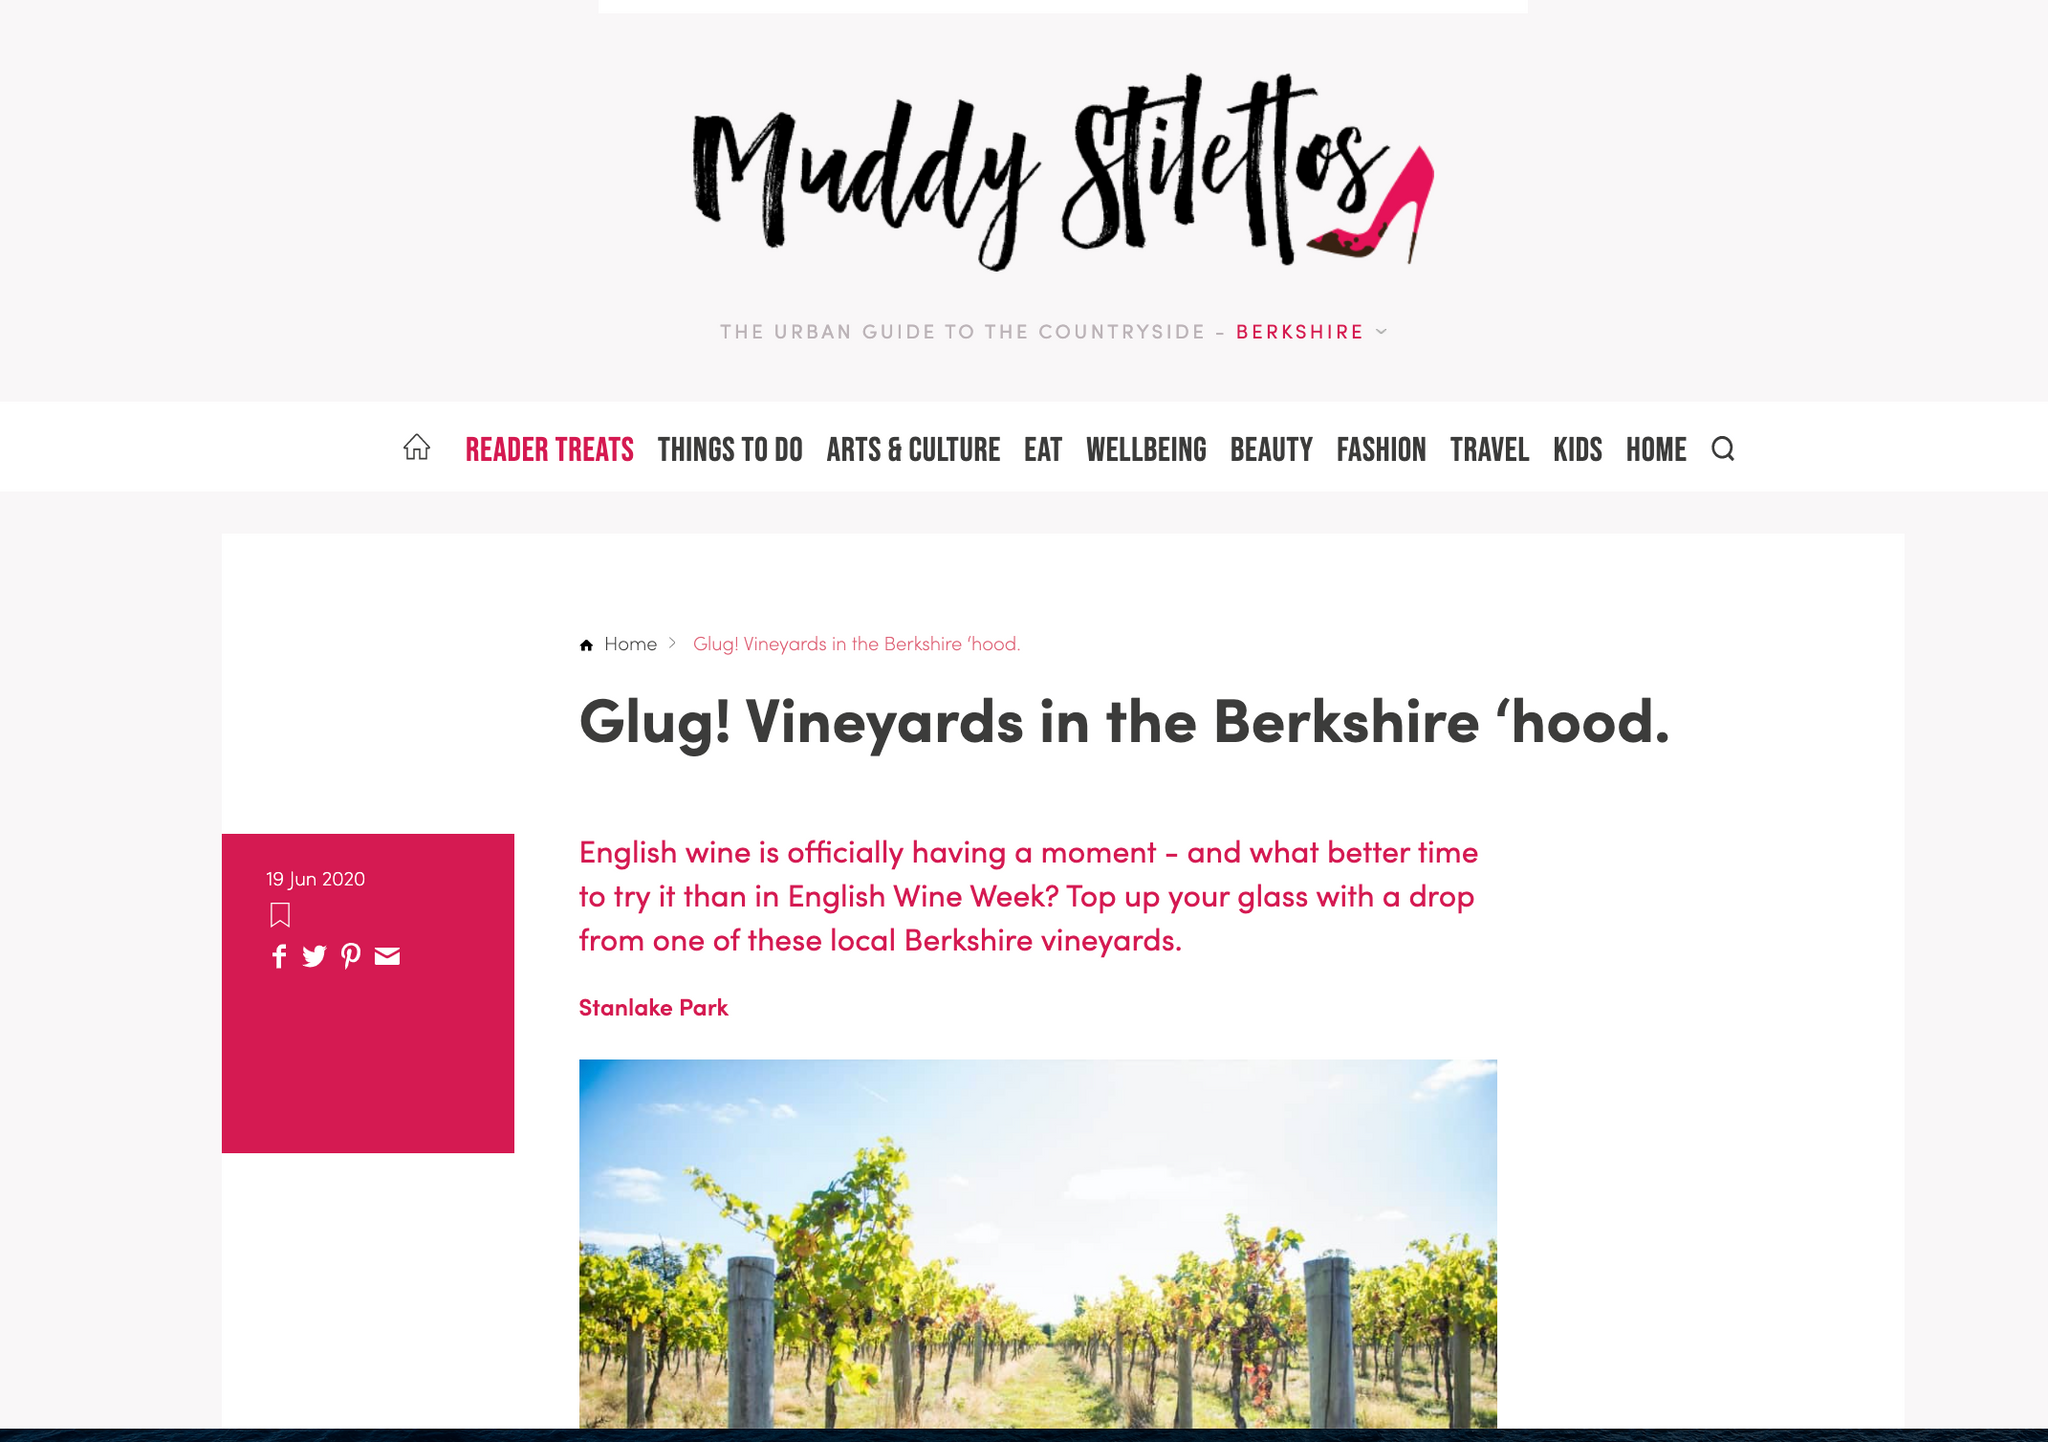 Muddy Stilettos - Best English wines from Berkshire's vineyards